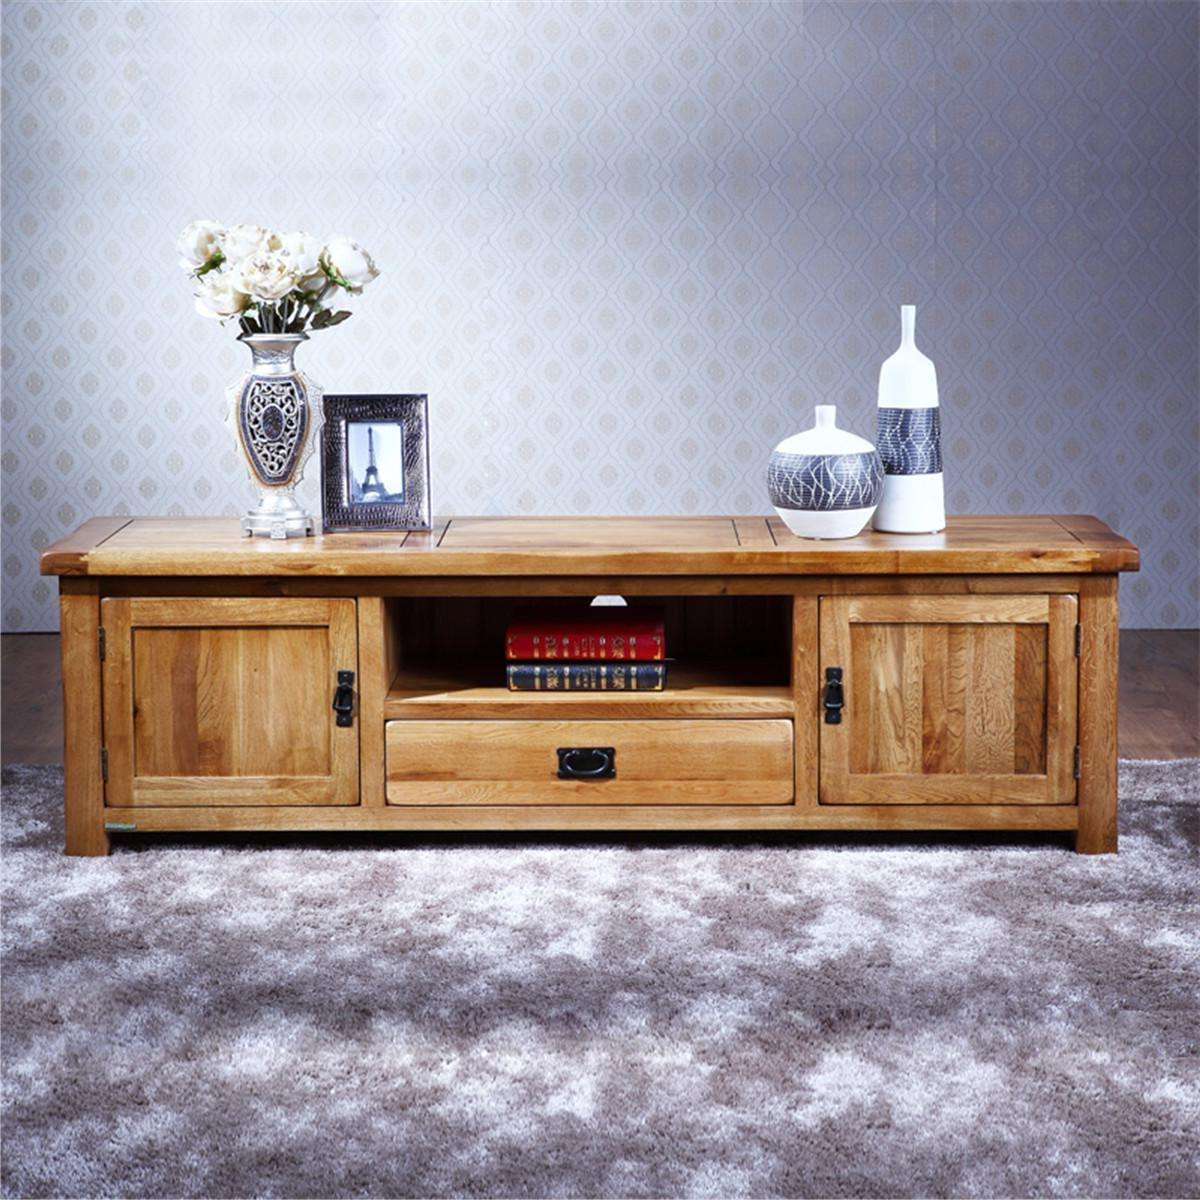 Beautiful Solid Oak Tv Stand 76 For Home Remodel Ideas With Solid With Oak Tv Stands Furniture (View 7 of 15)